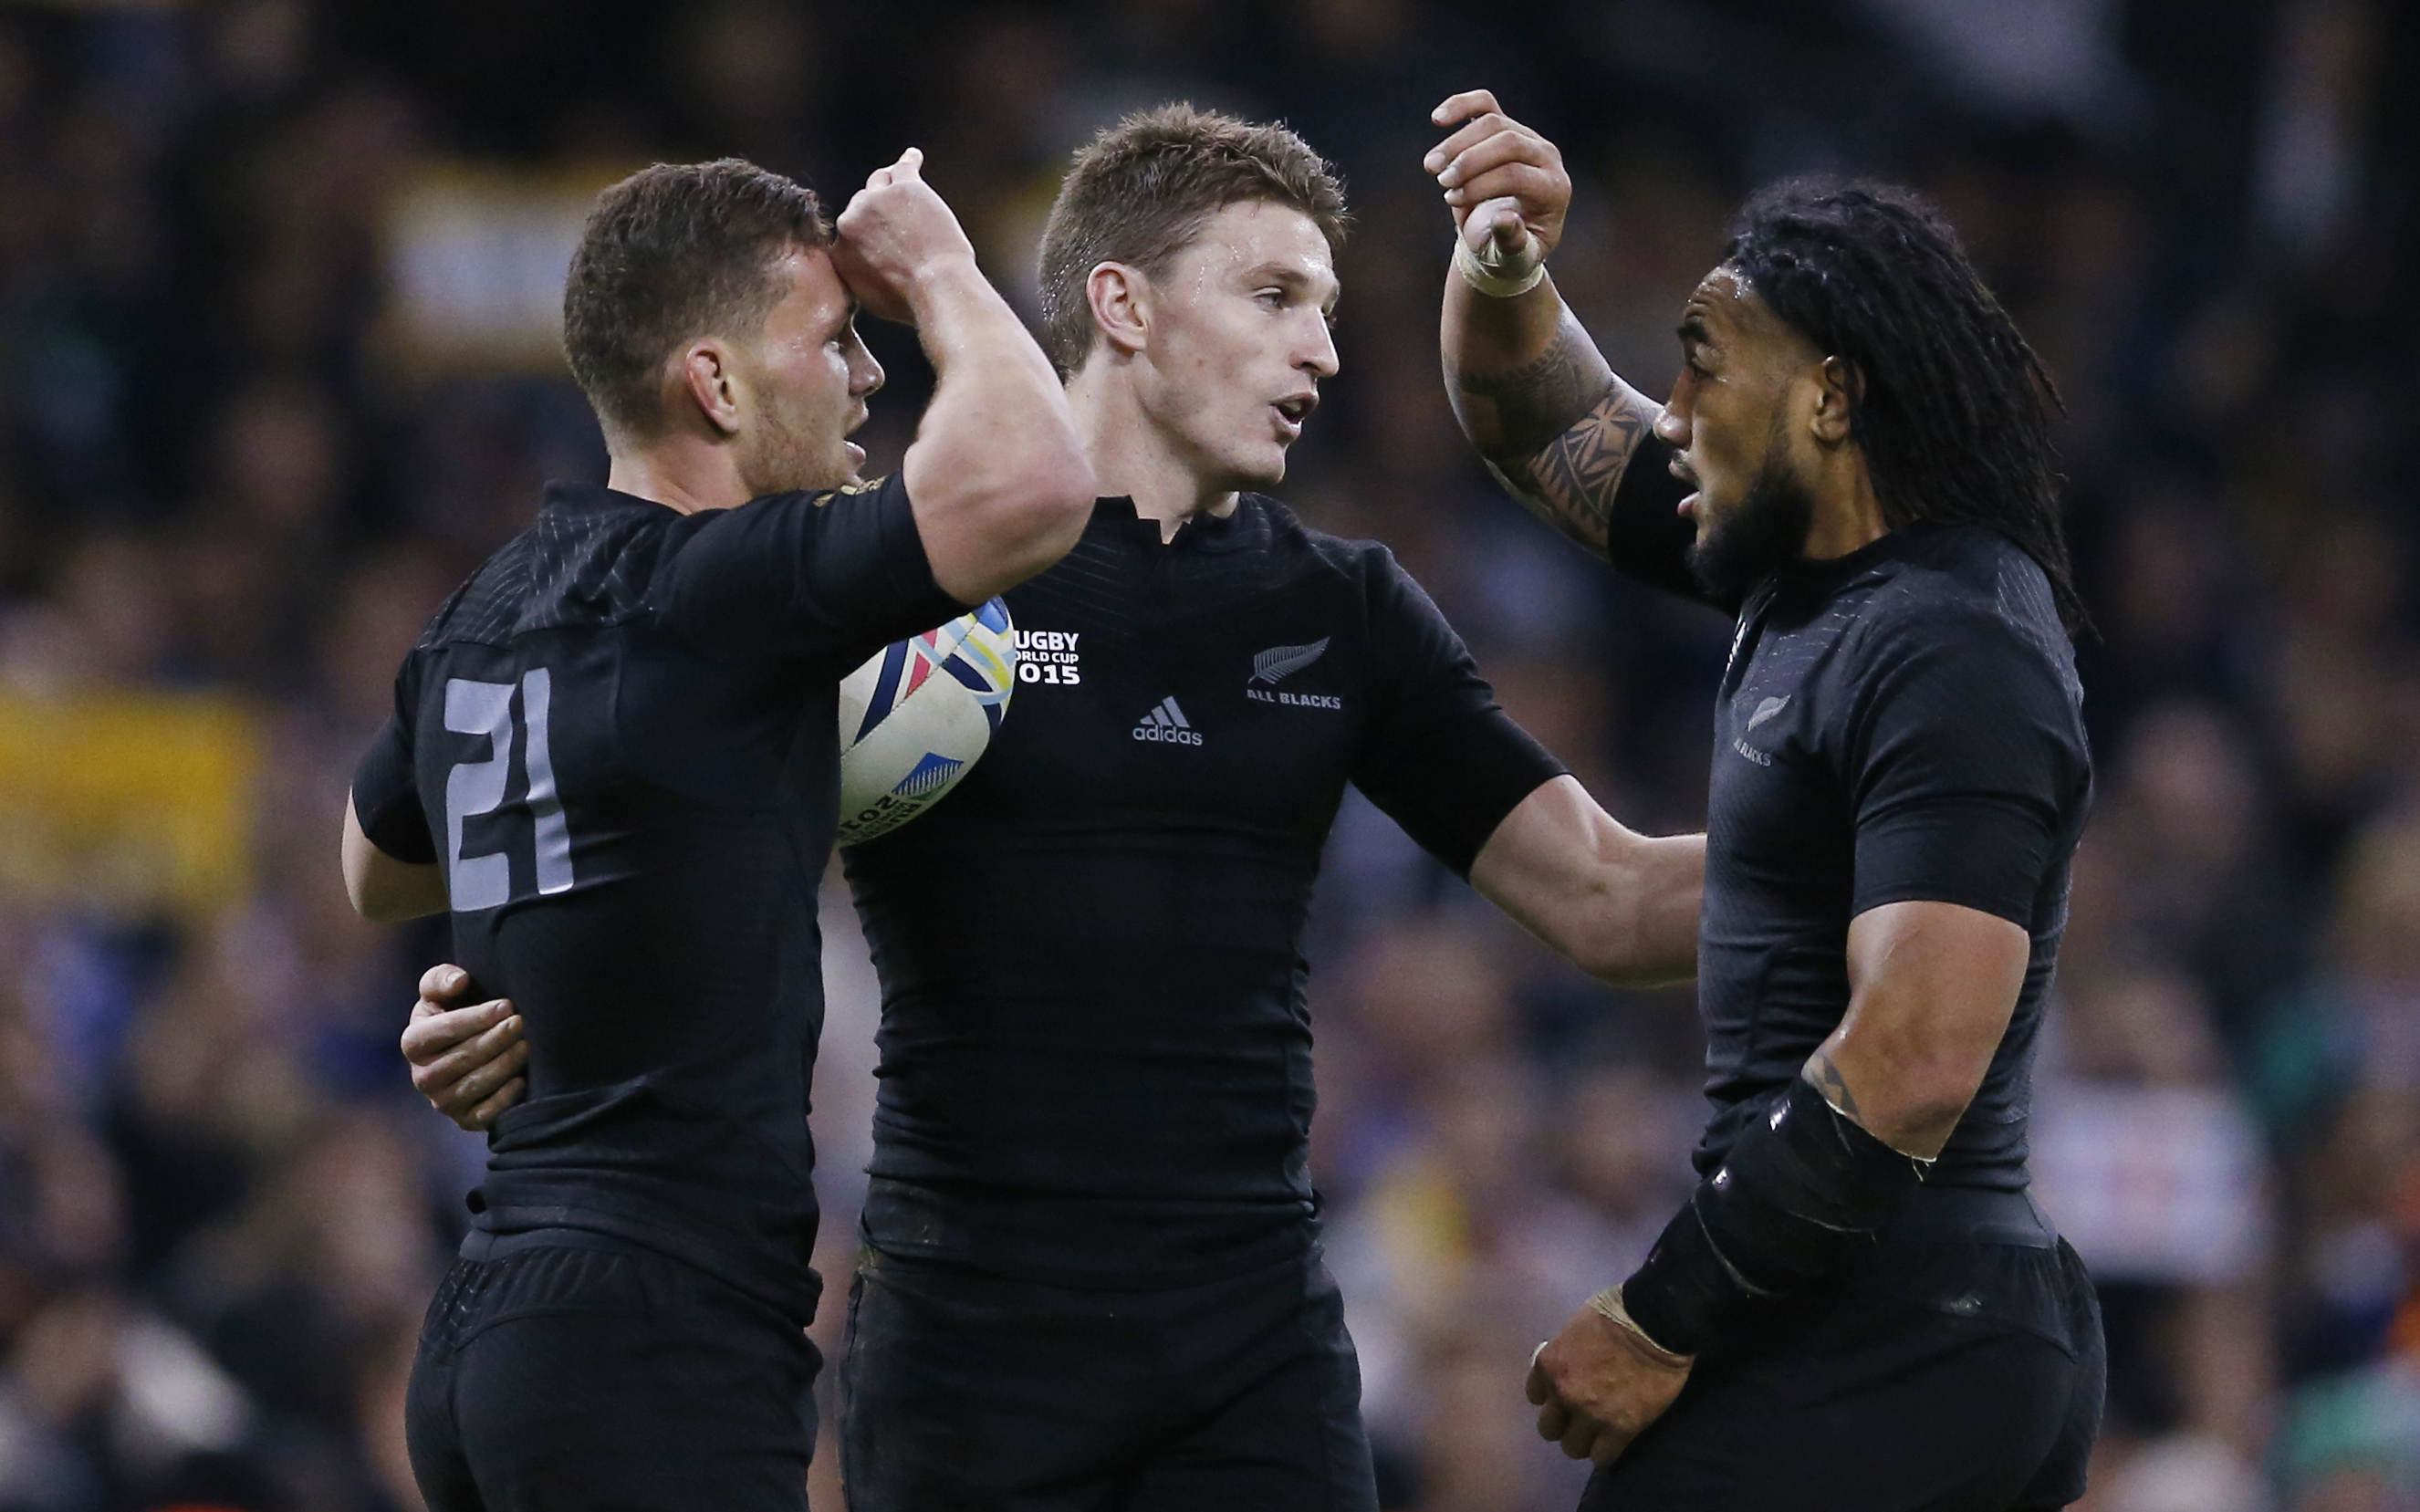 All blacks une machine qui r cite un rugby total coupe - Resultats coupe du monde de rugby 2015 ...